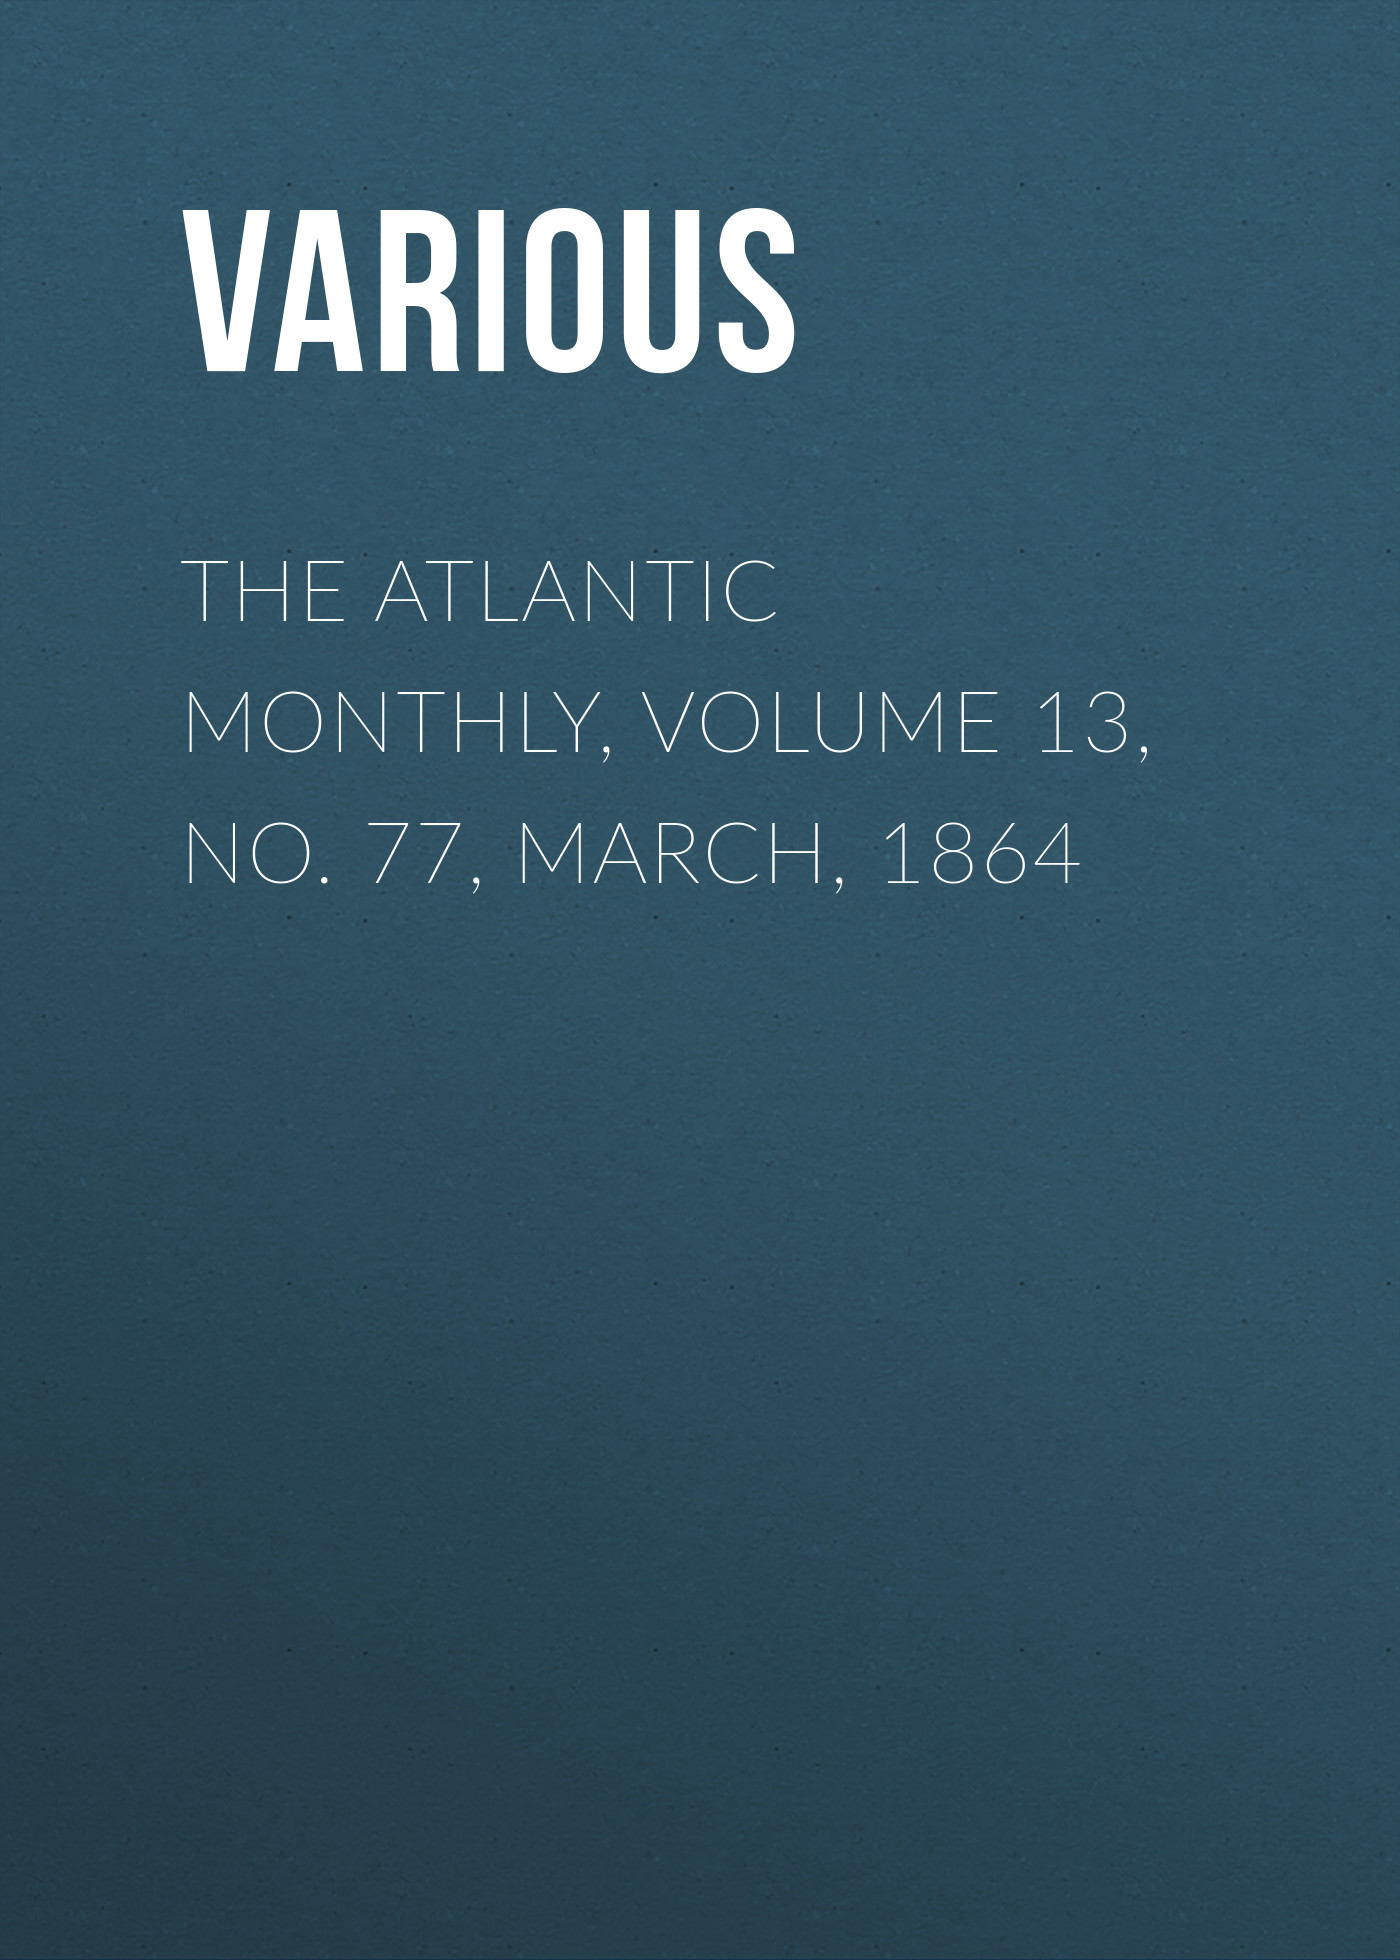 Various The Atlantic Monthly, Volume 13, No. 77, March, 1864